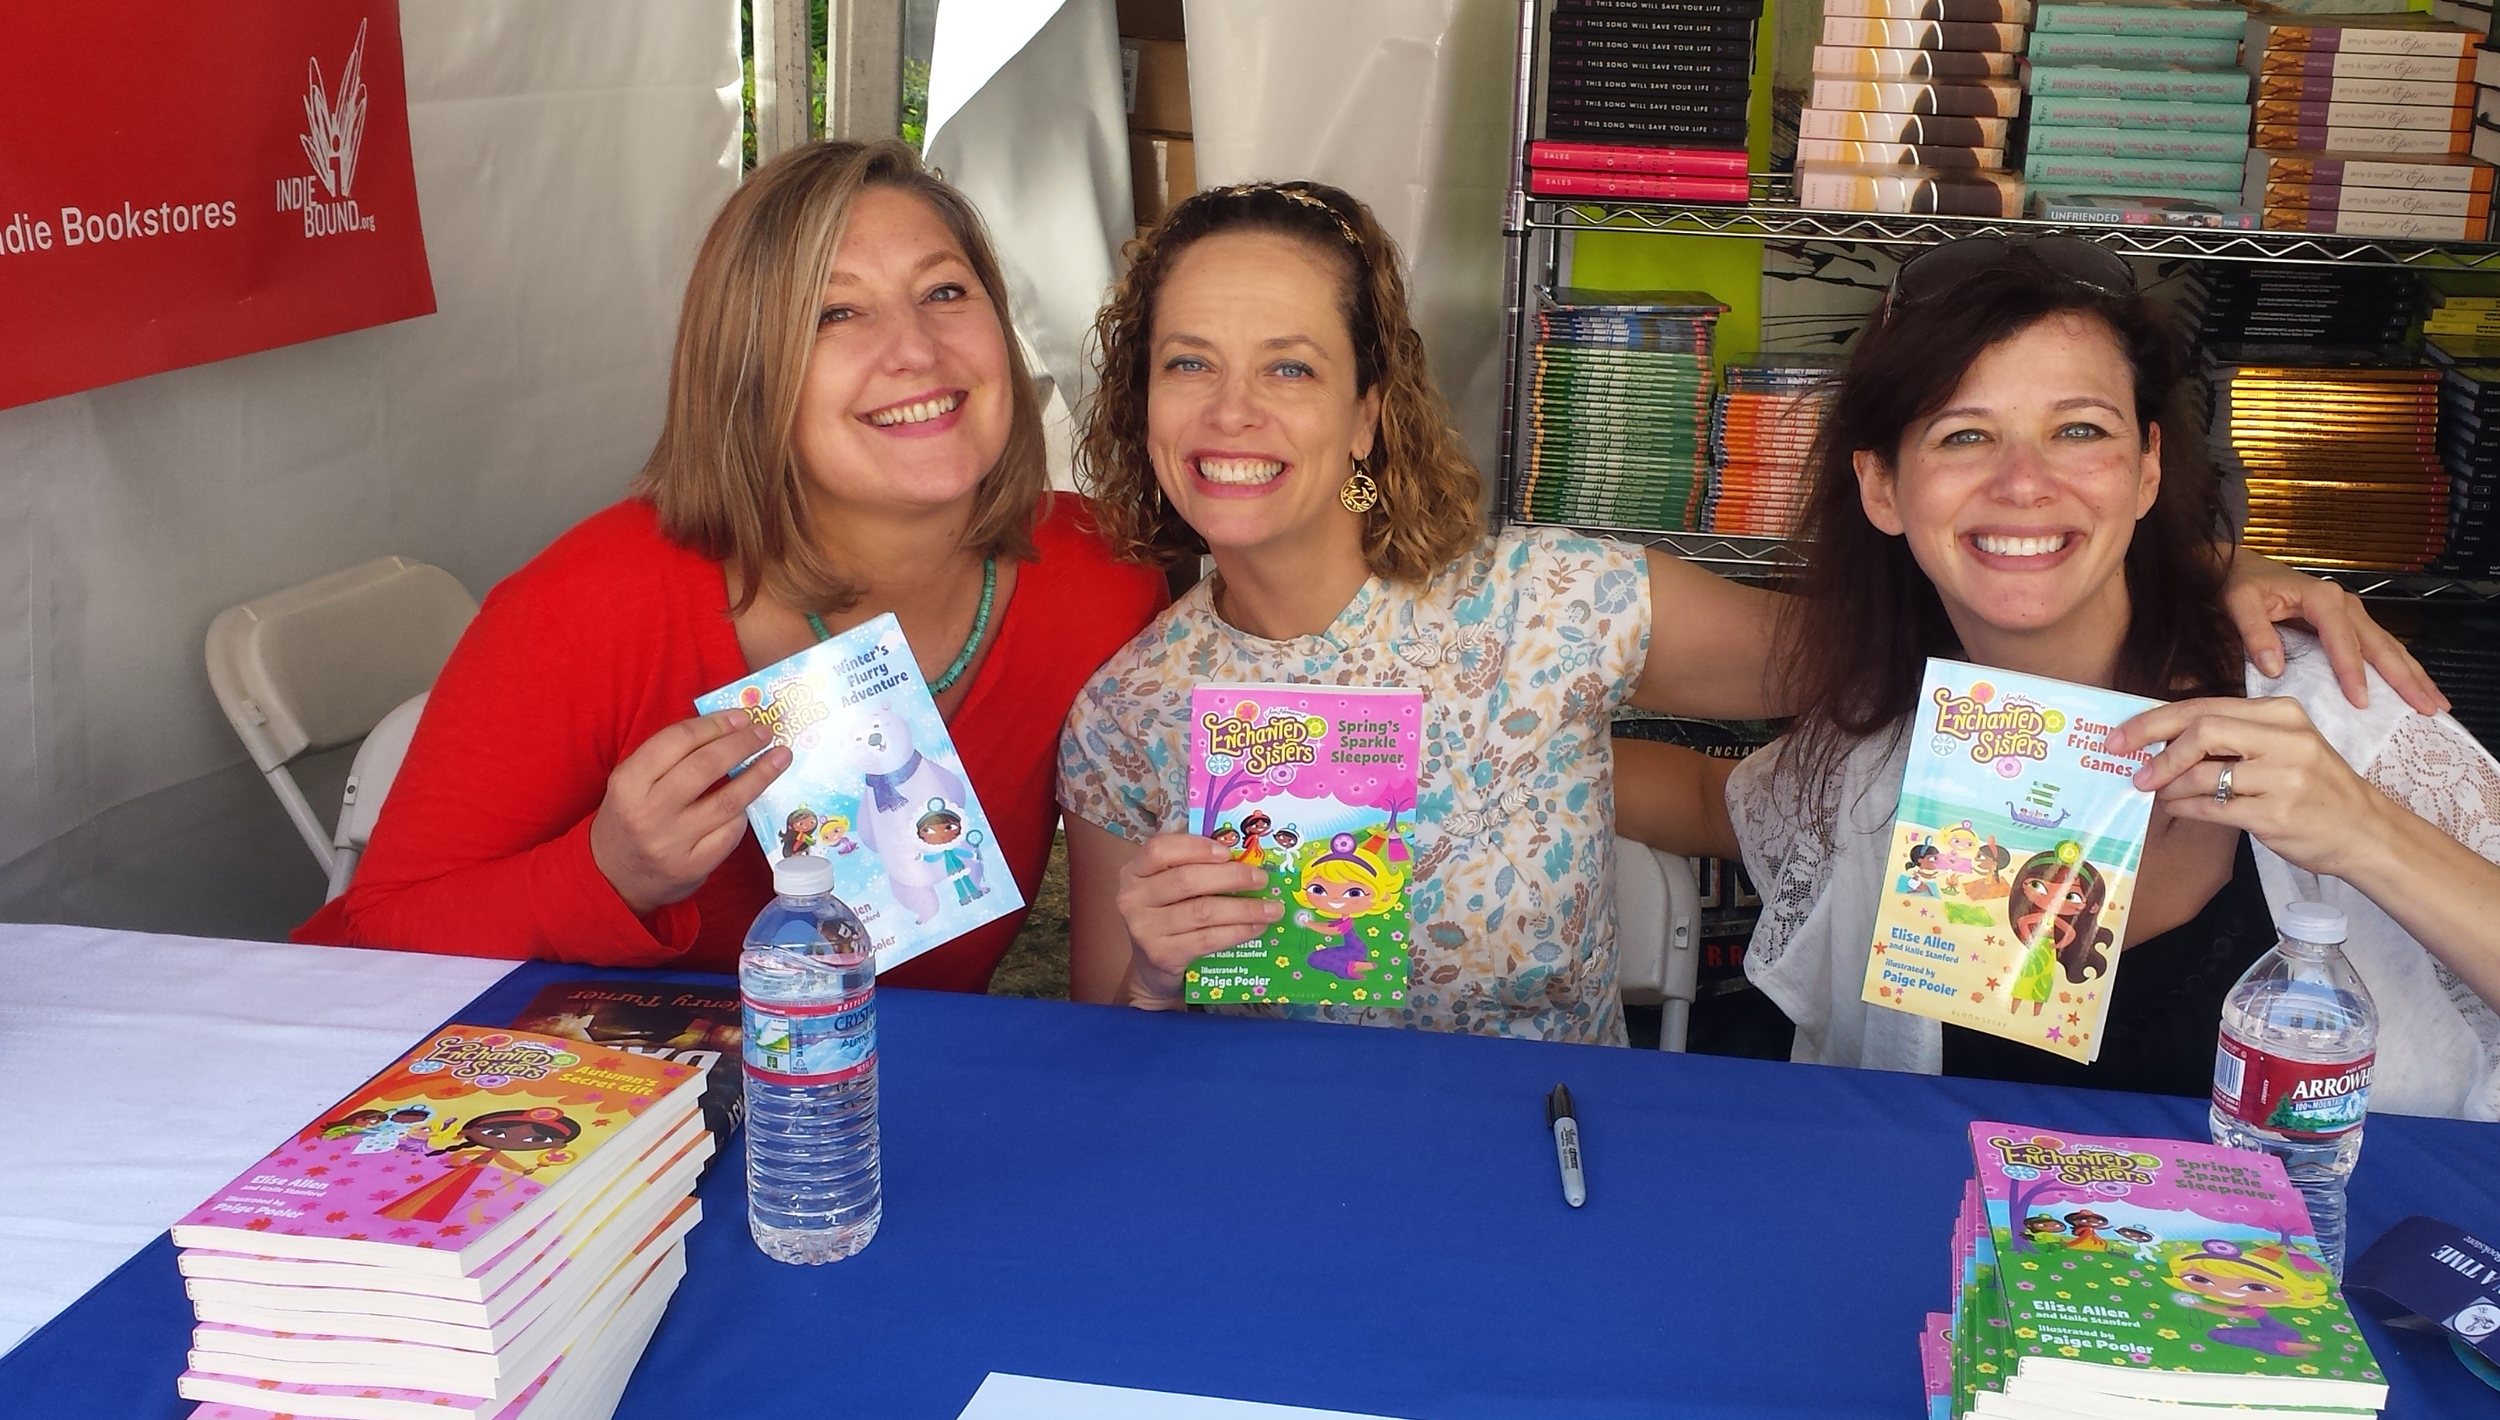 illustrator Paige Pooler and authorsHalle Stanfordand Elise Allen at a book signing event.